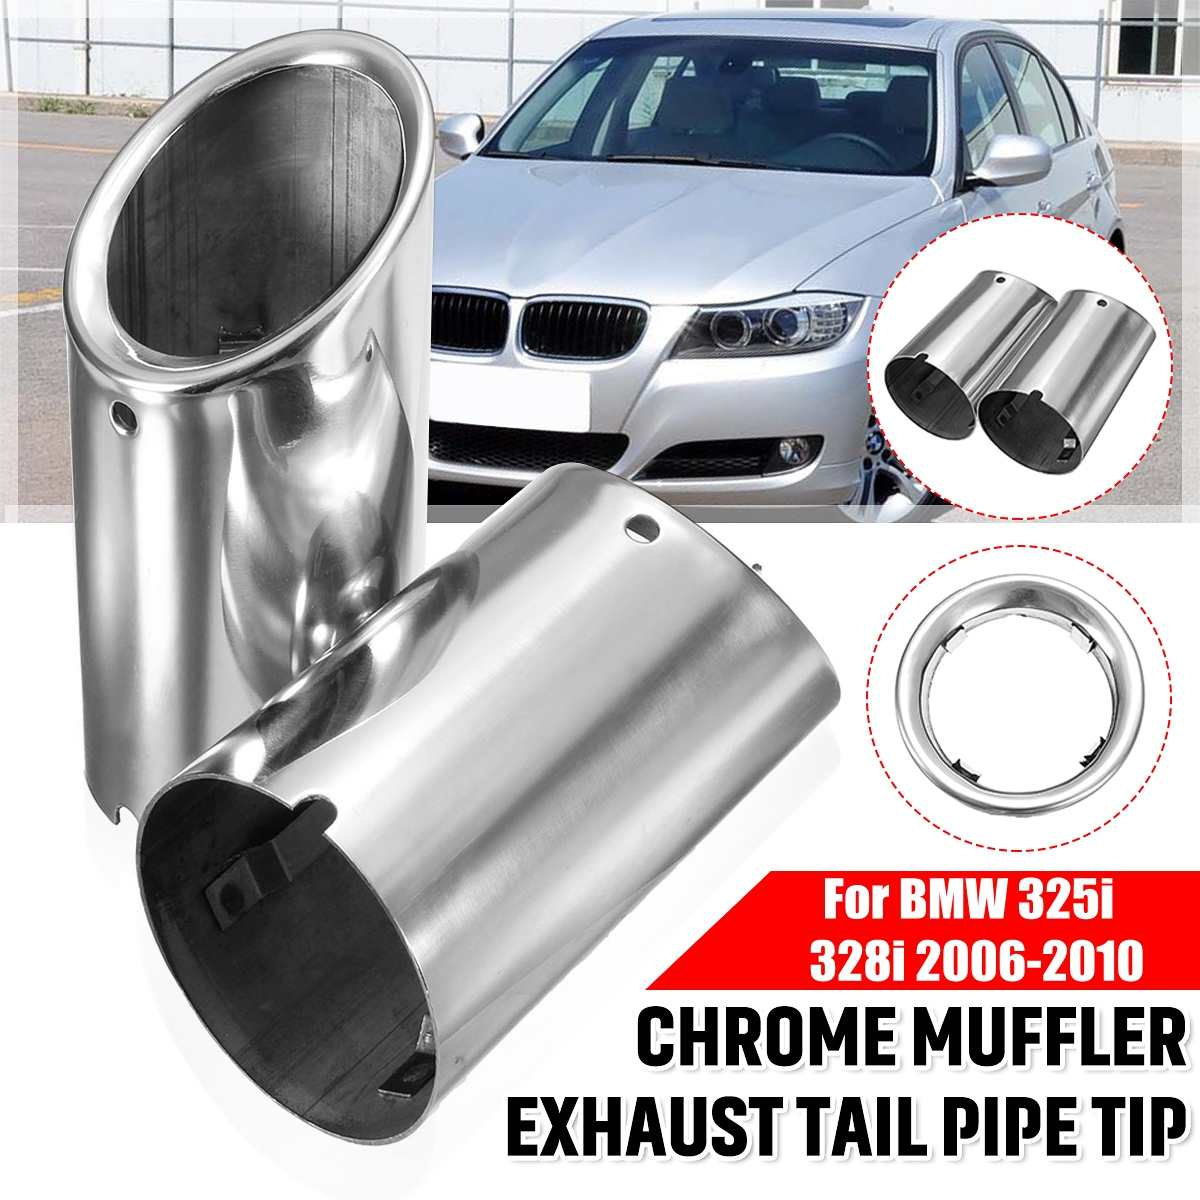 Pair Car Exhaust Muffler Stainless Steel Tail Pipe Tip Chrome For BMW E90 E92 325i 328i 3 Series 2006 2007 2008 2009 2010